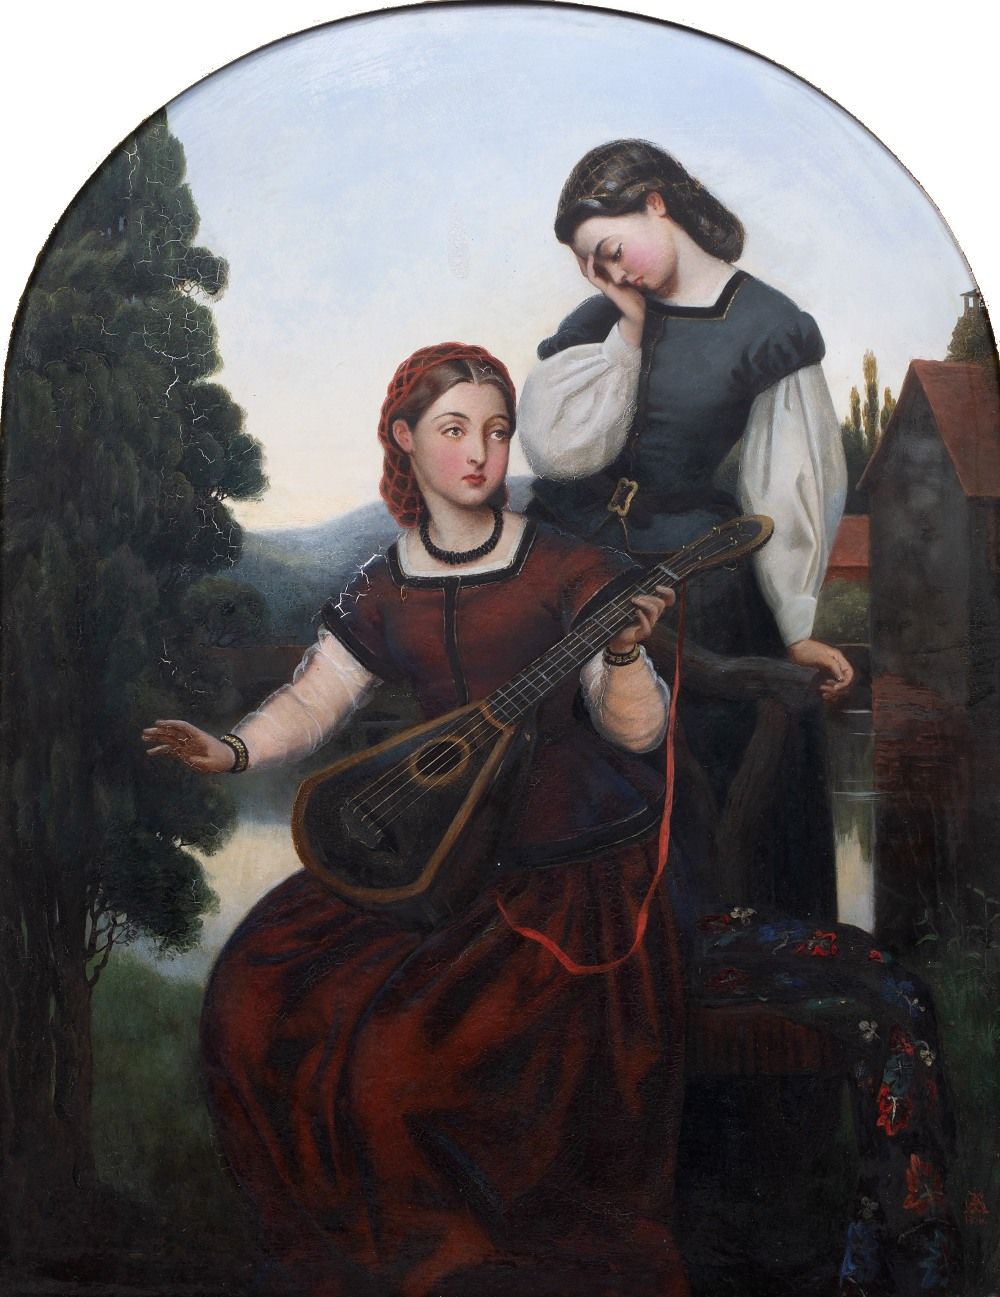 GEORGE ADOLPHUS STOREY (1834-1919) 'Song of the Past', signed with monogram and dated 1860, oil on